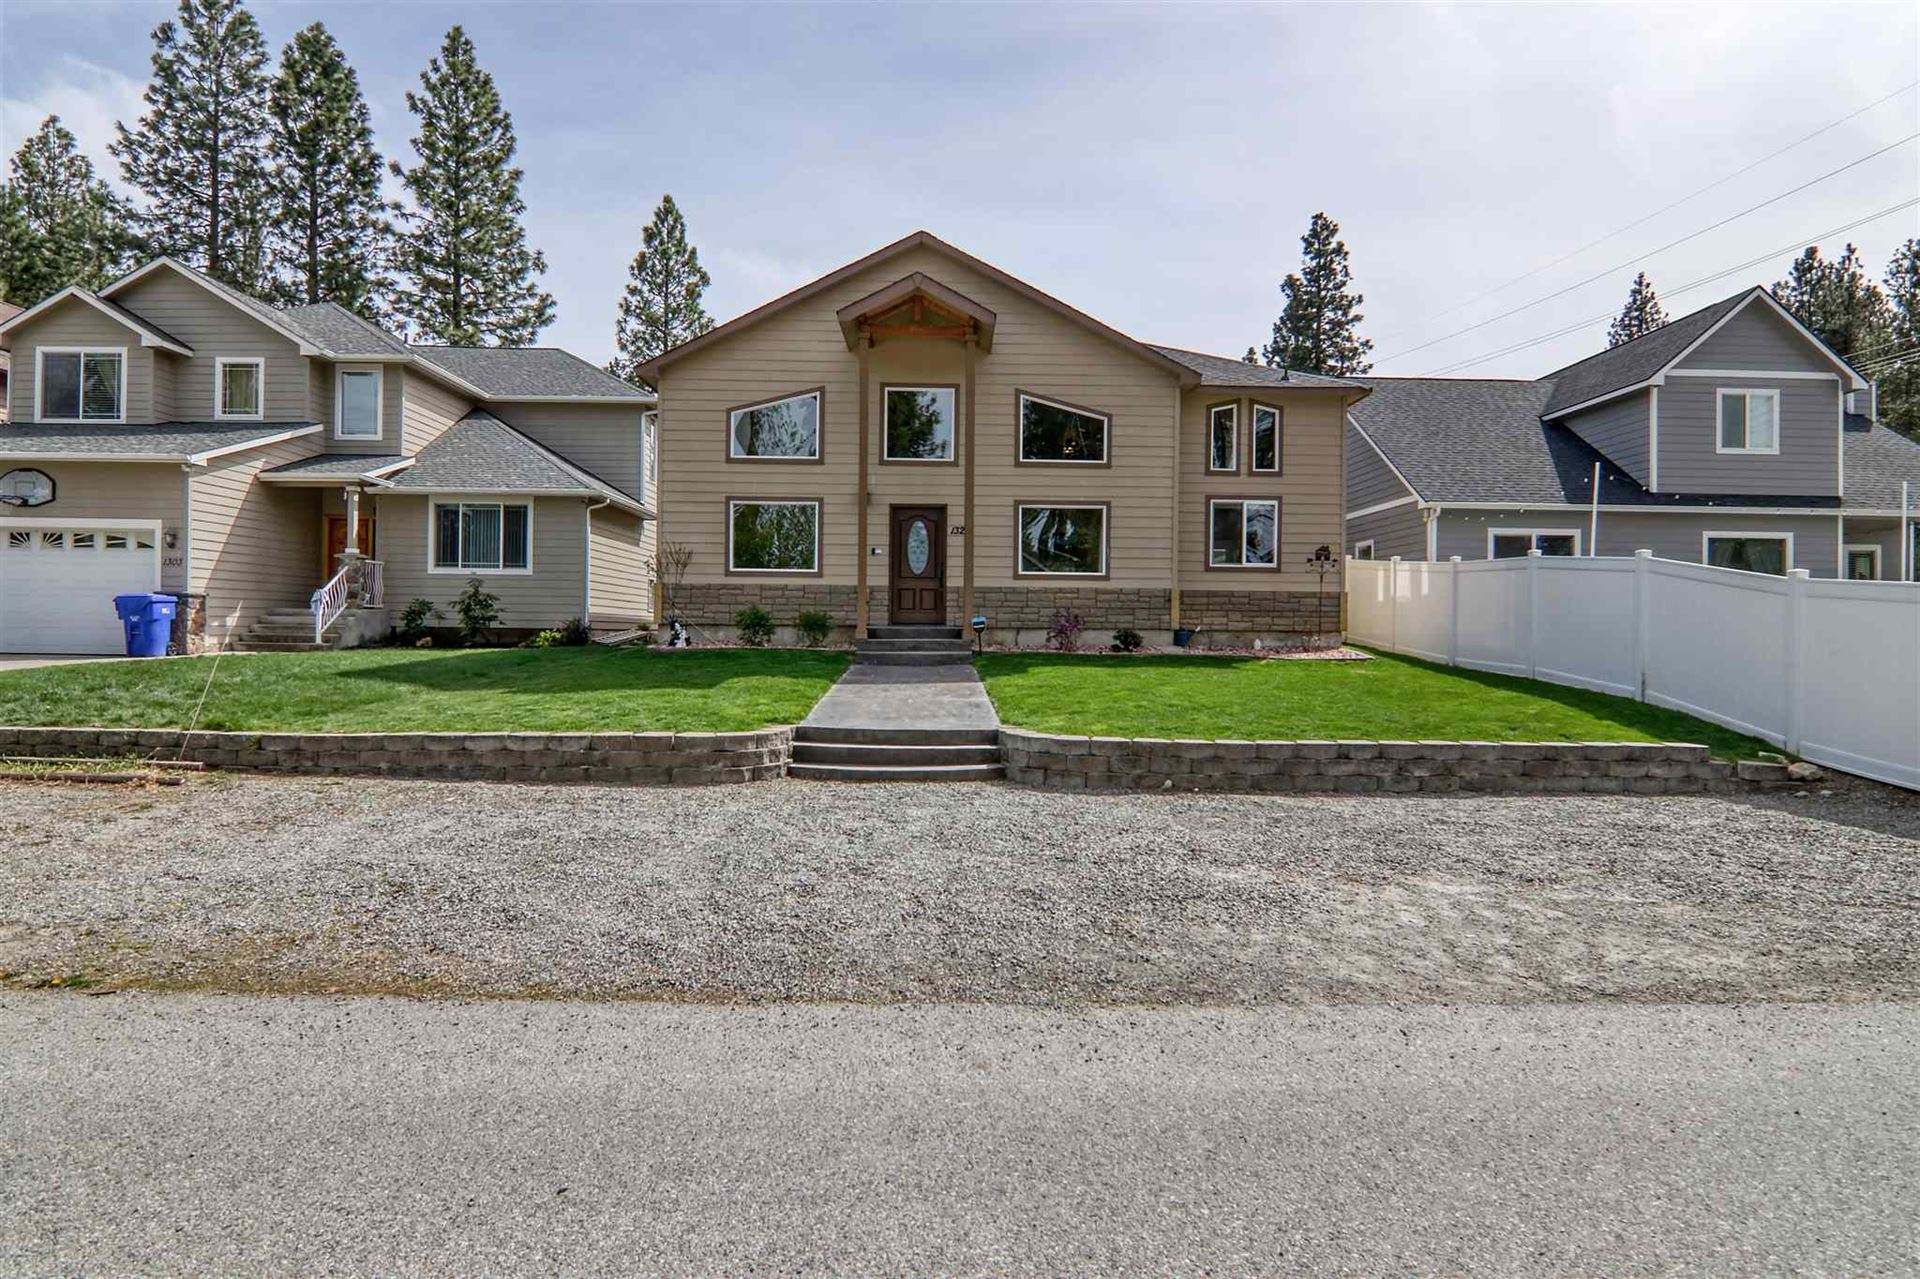 1321 S Bettman Rd, Spokane Valley, WA 99212 - #: 202114824